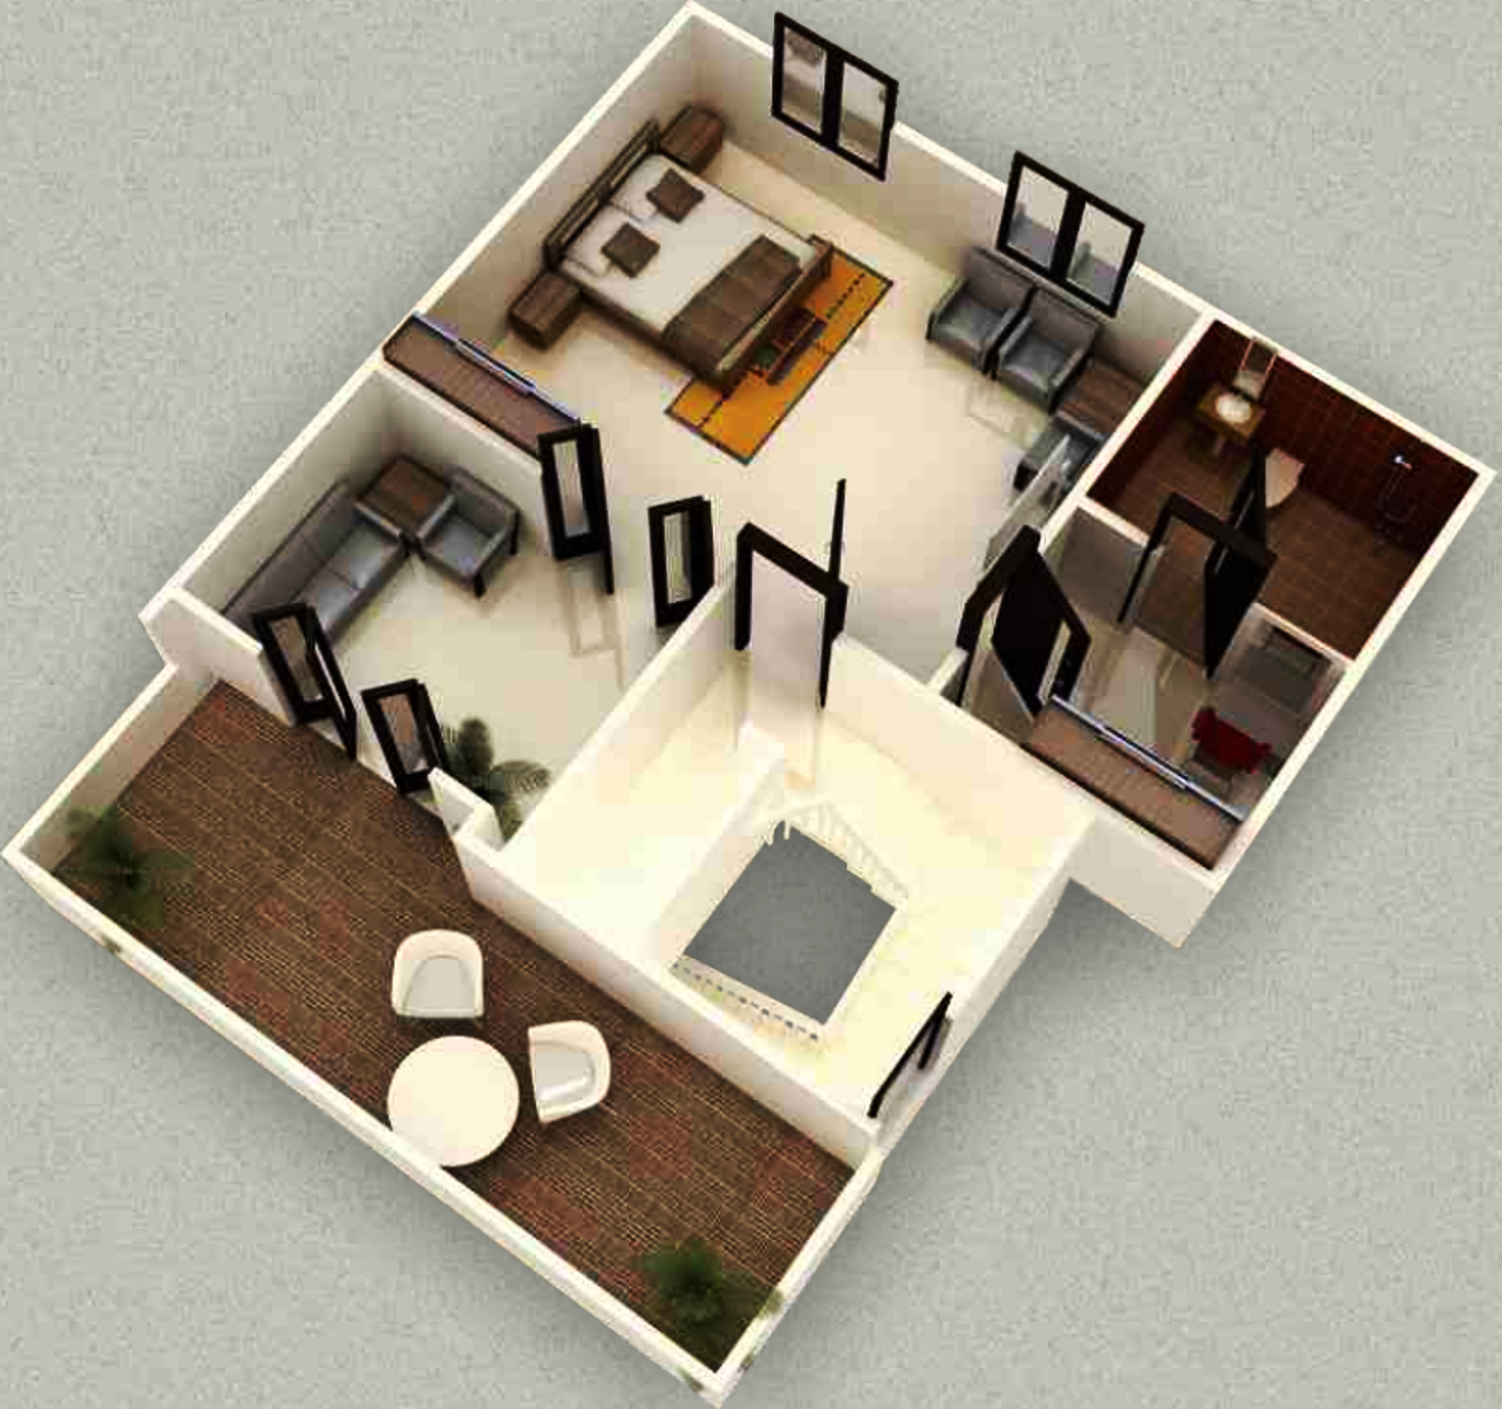 2500 sq ft 4 bhk 4t villa for sale in labh group shreeji for 4 bhk villa interior design